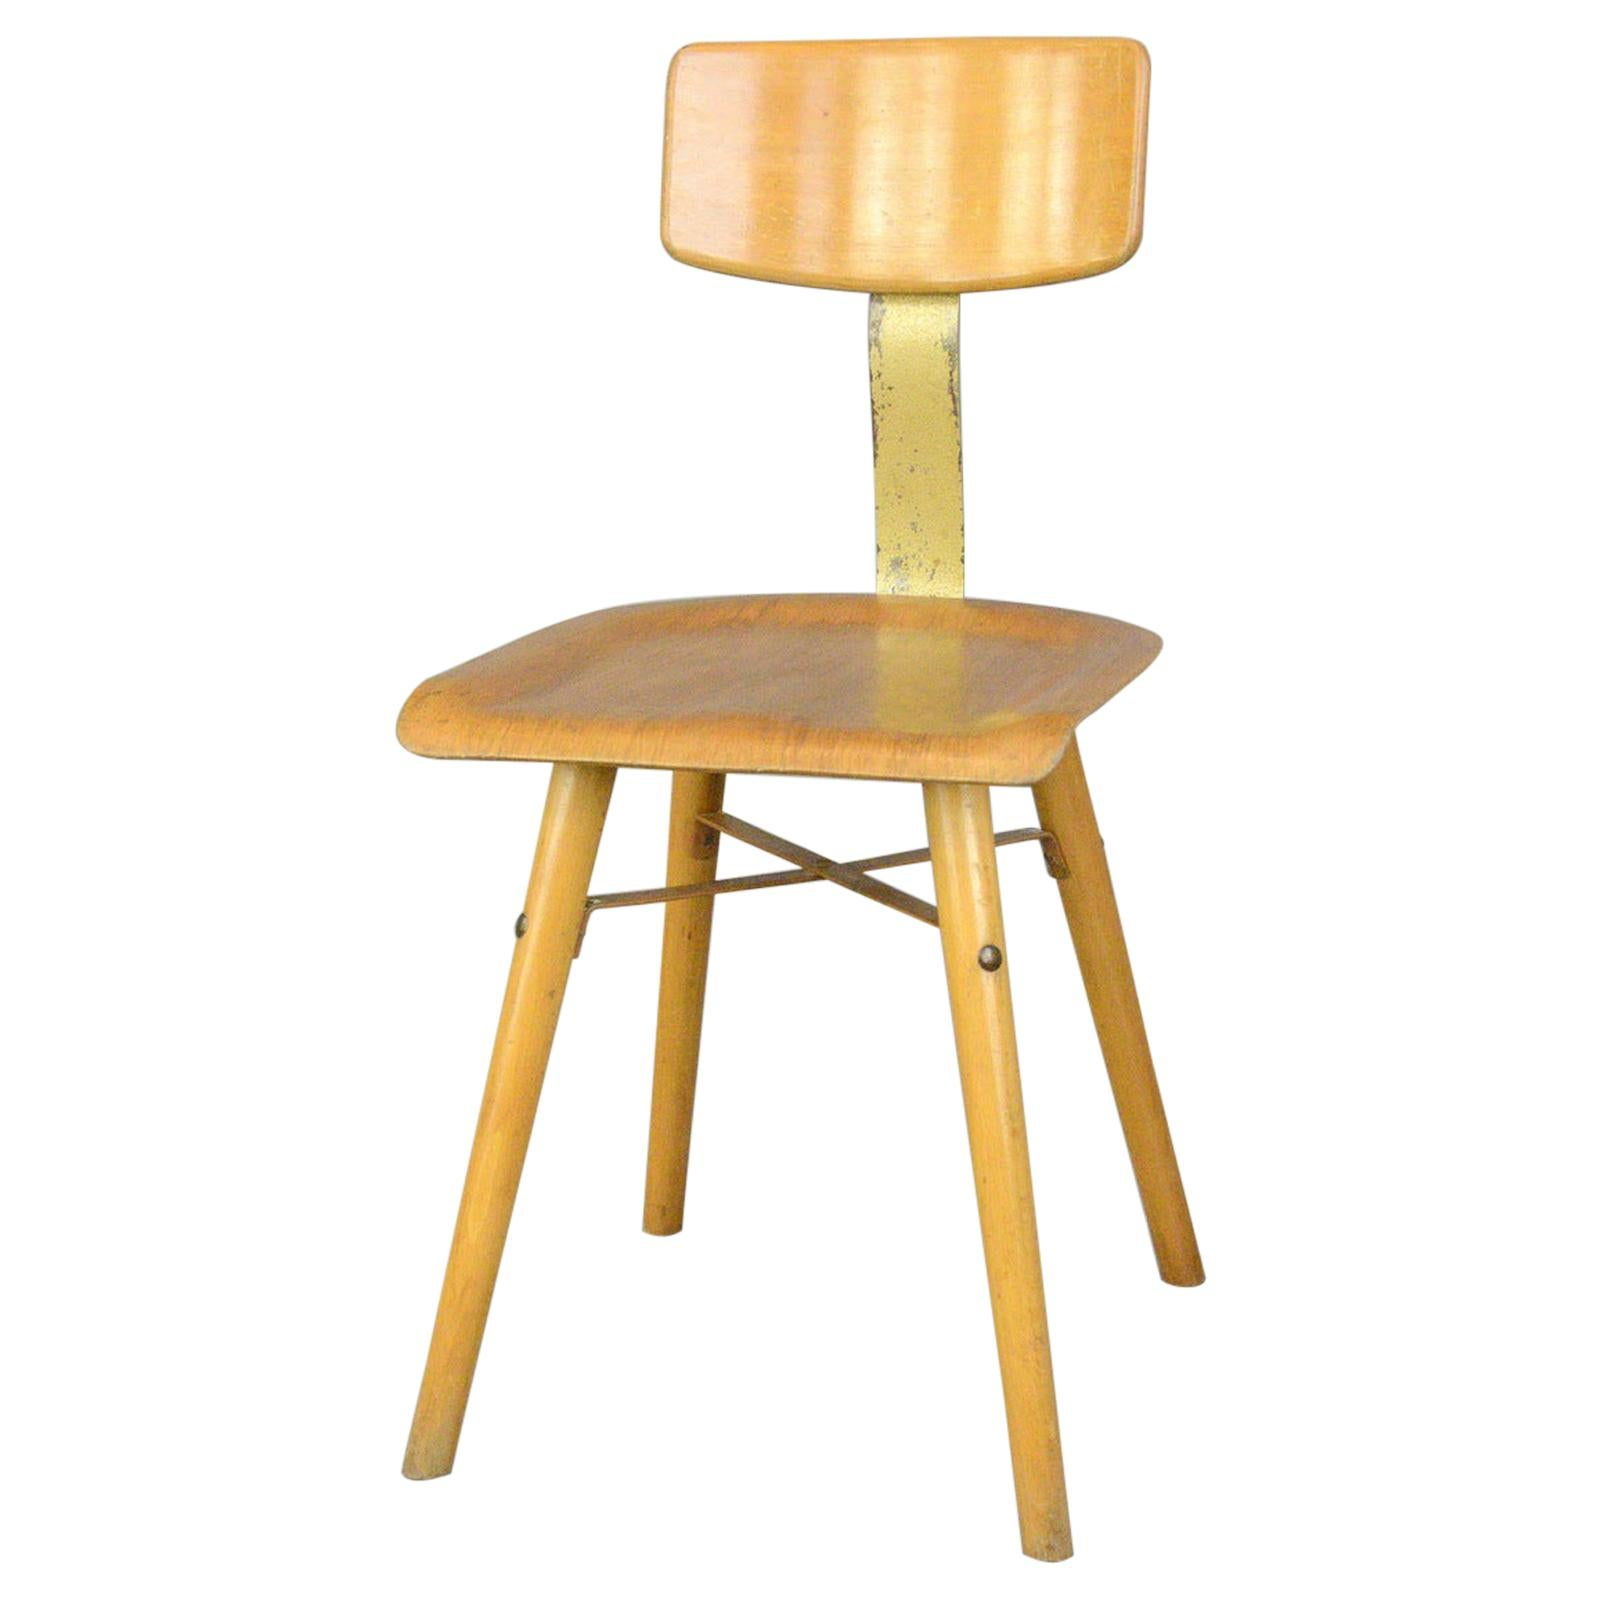 Industrial Work Stool By Ama, circa 1930s